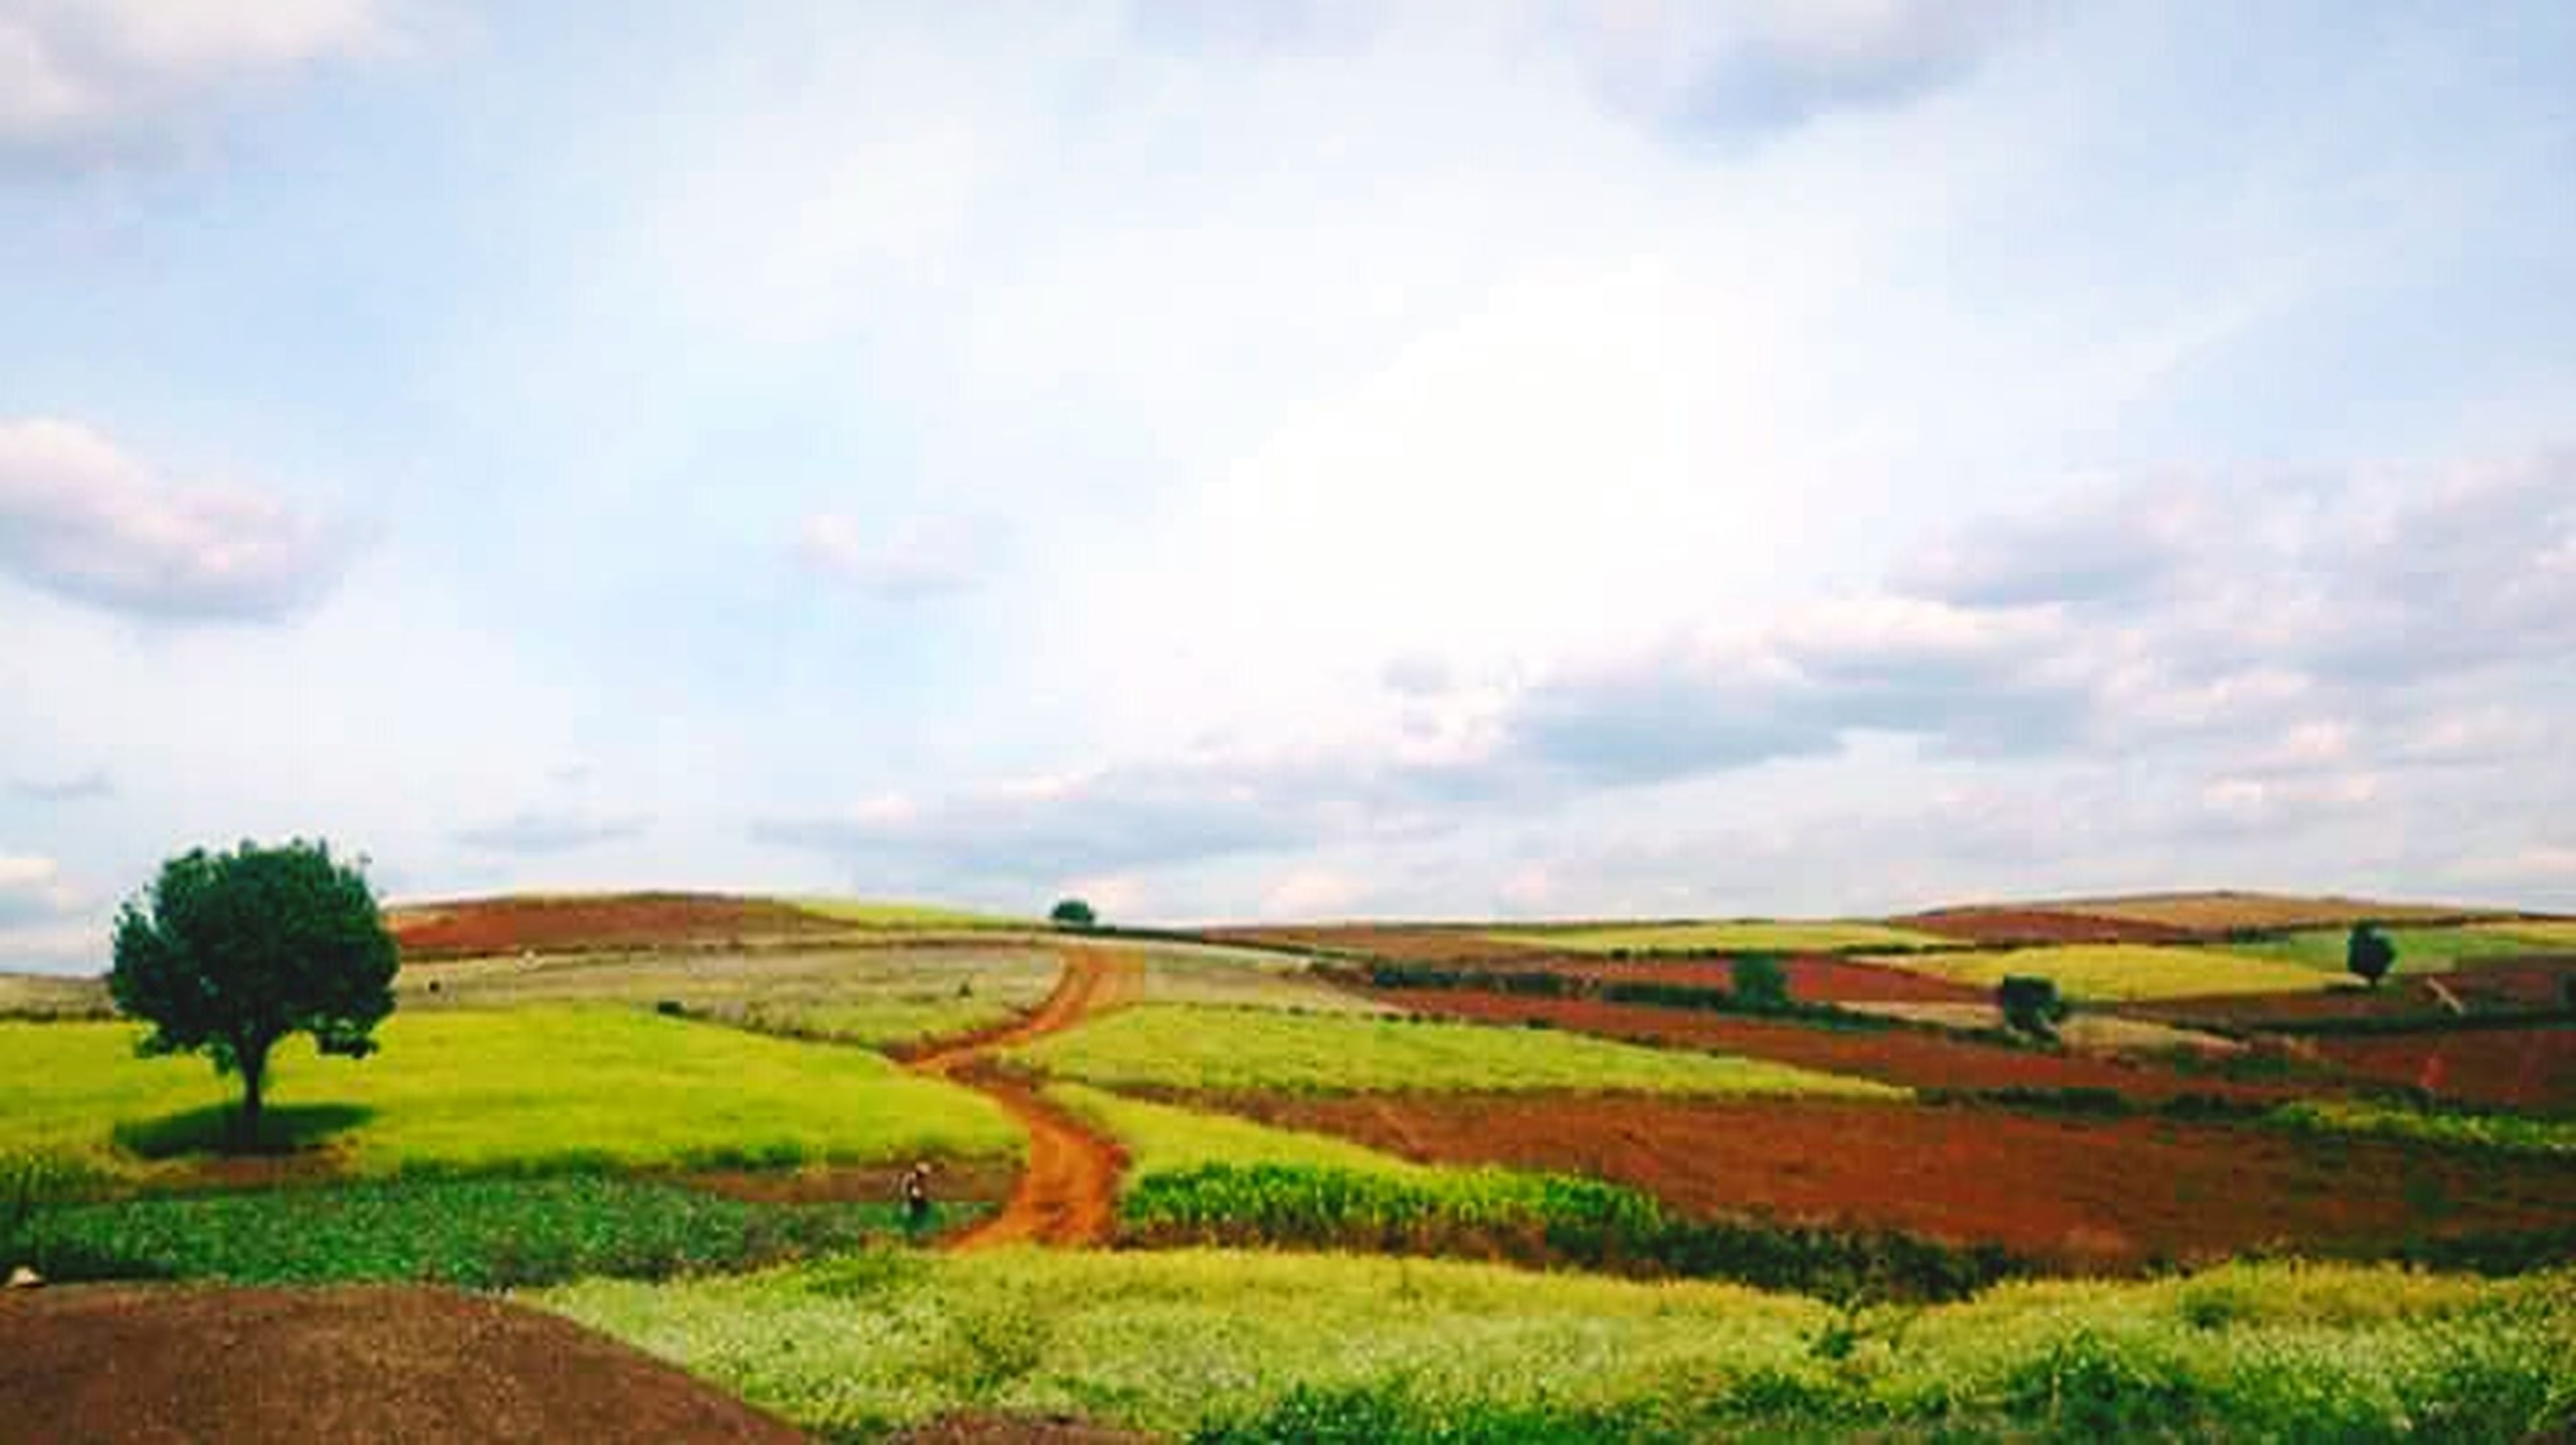 sky, field, landscape, agriculture, rural scene, tranquil scene, tranquility, cloud - sky, grass, beauty in nature, growth, scenics, cloud, nature, crop, cloudy, yellow, cultivated land, green color, horizon over land, day, outdoors, grassy, plant, no people, non-urban scene, idyllic, remote, green